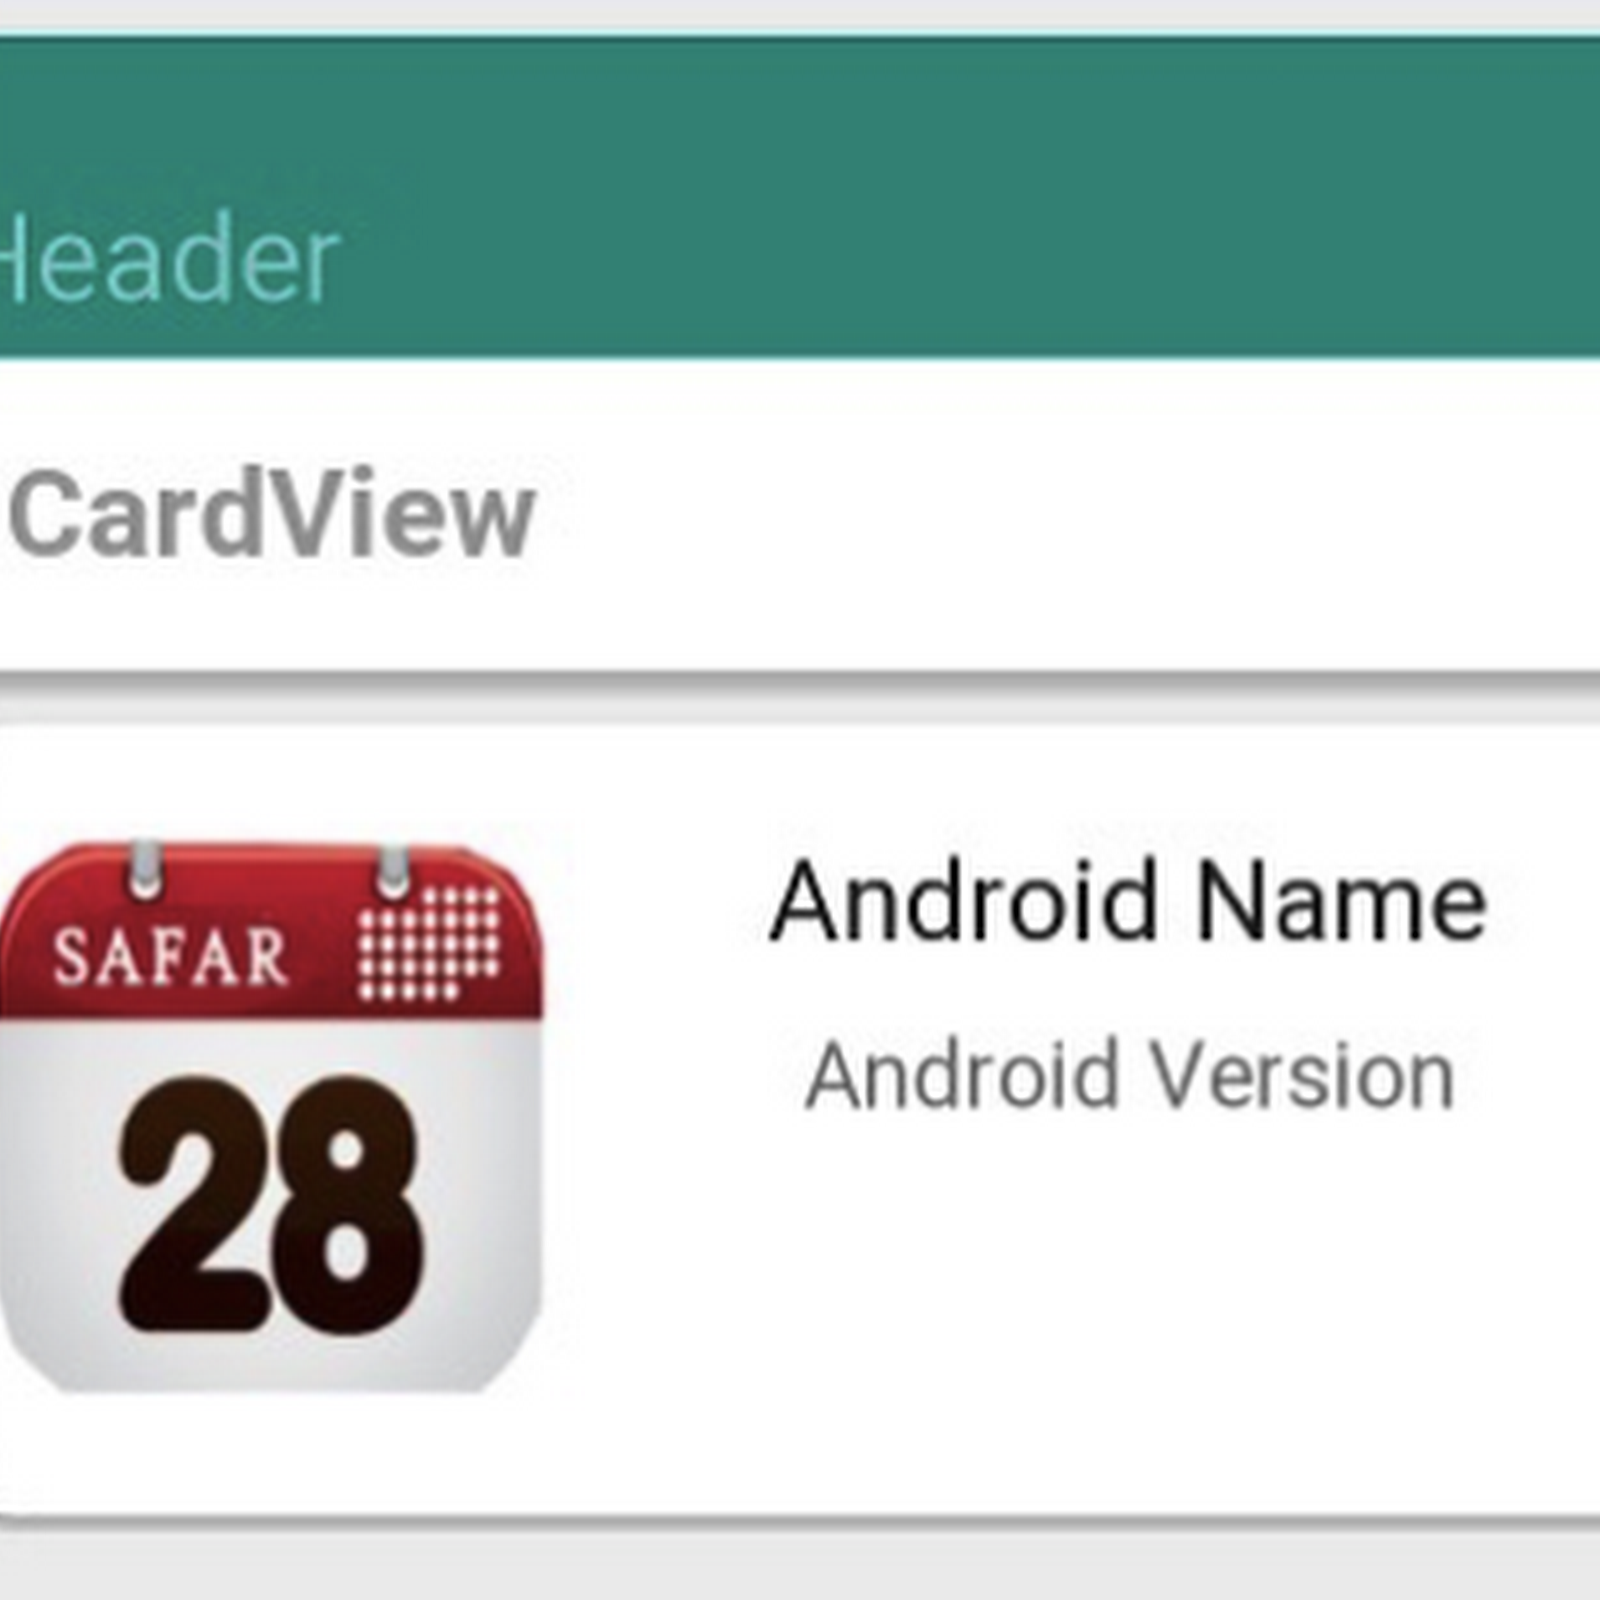 How to add header and image in CardView Material Design